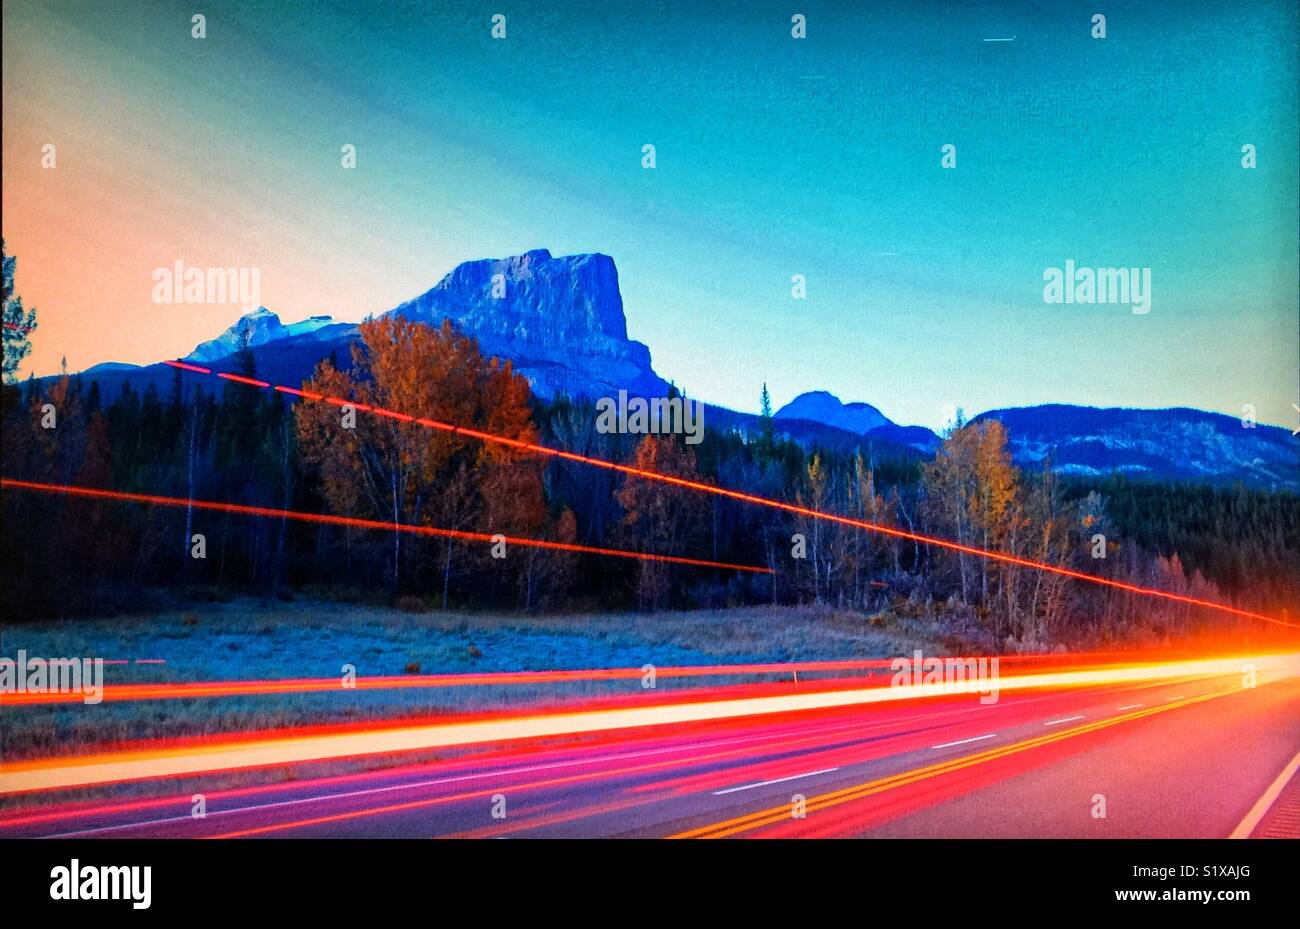 Mountains and tail lights - Stock Image